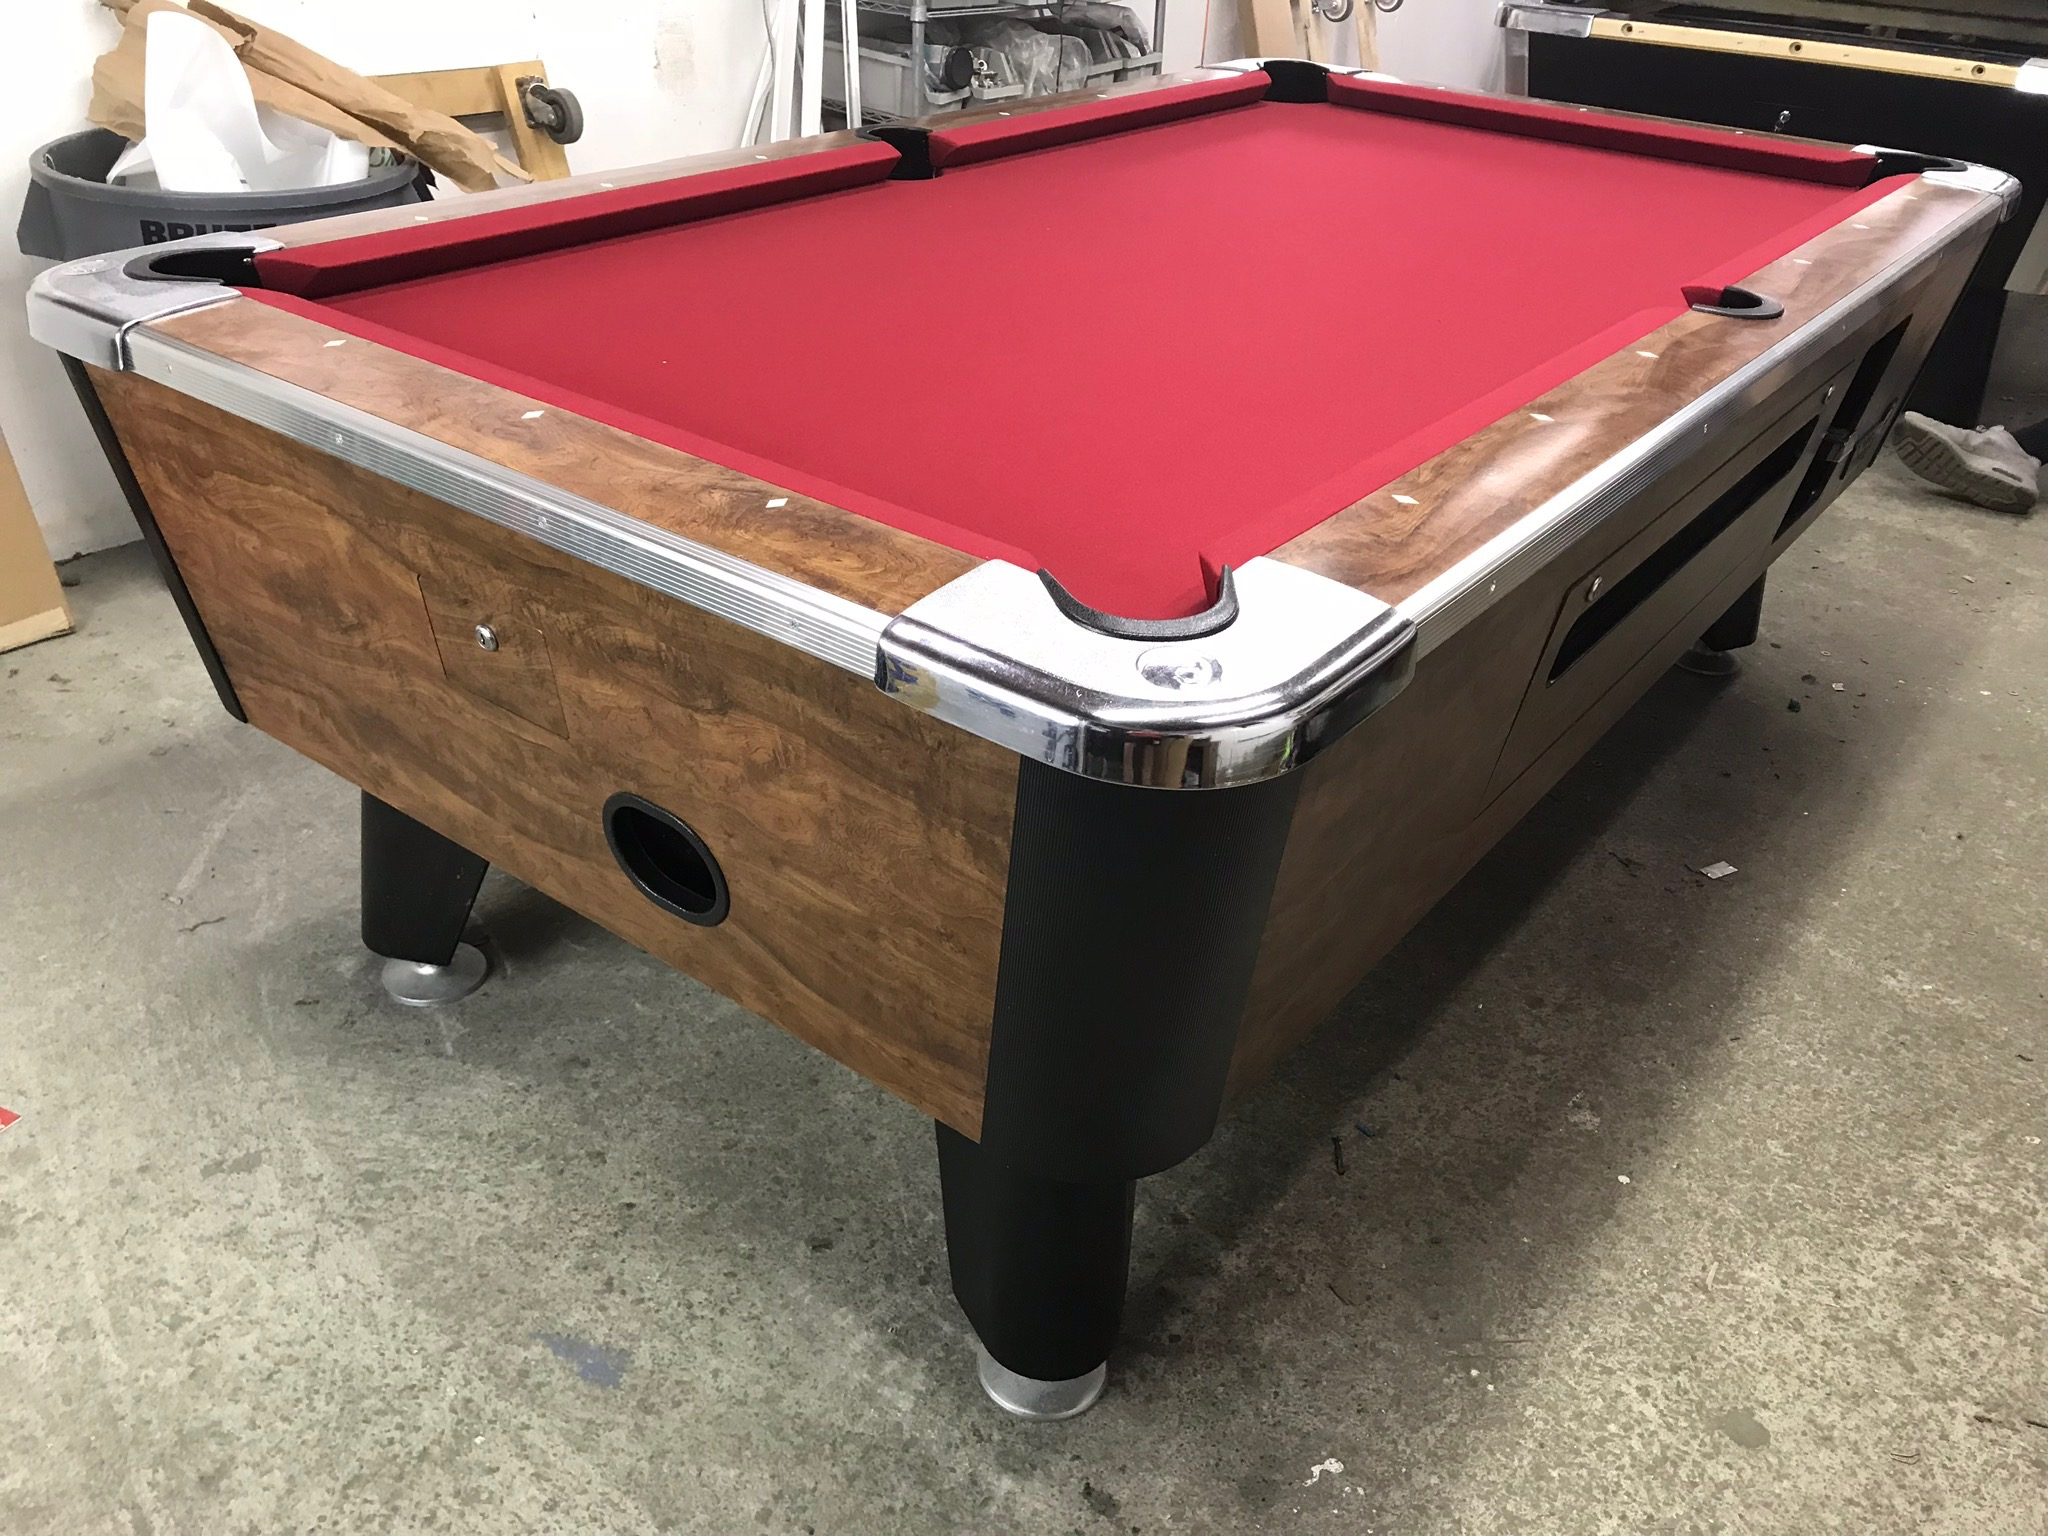 Swell Used Coin Operated Pool Table Table 022818 Used Coin Download Free Architecture Designs Itiscsunscenecom